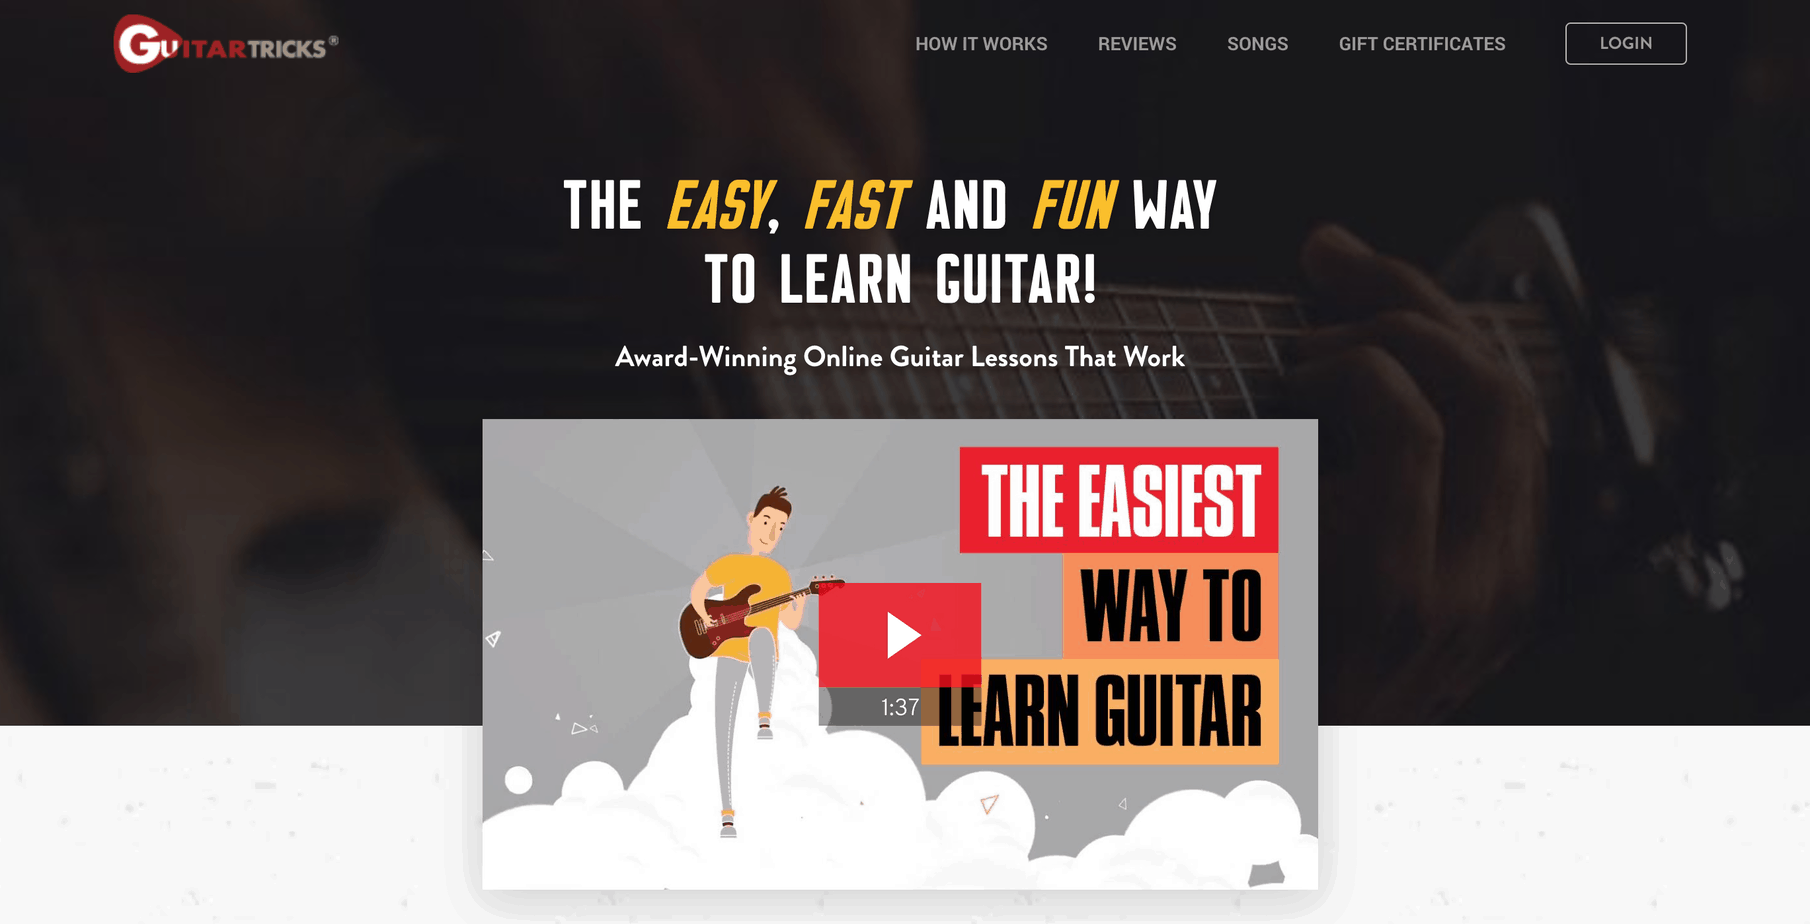 guitar tricks homepage